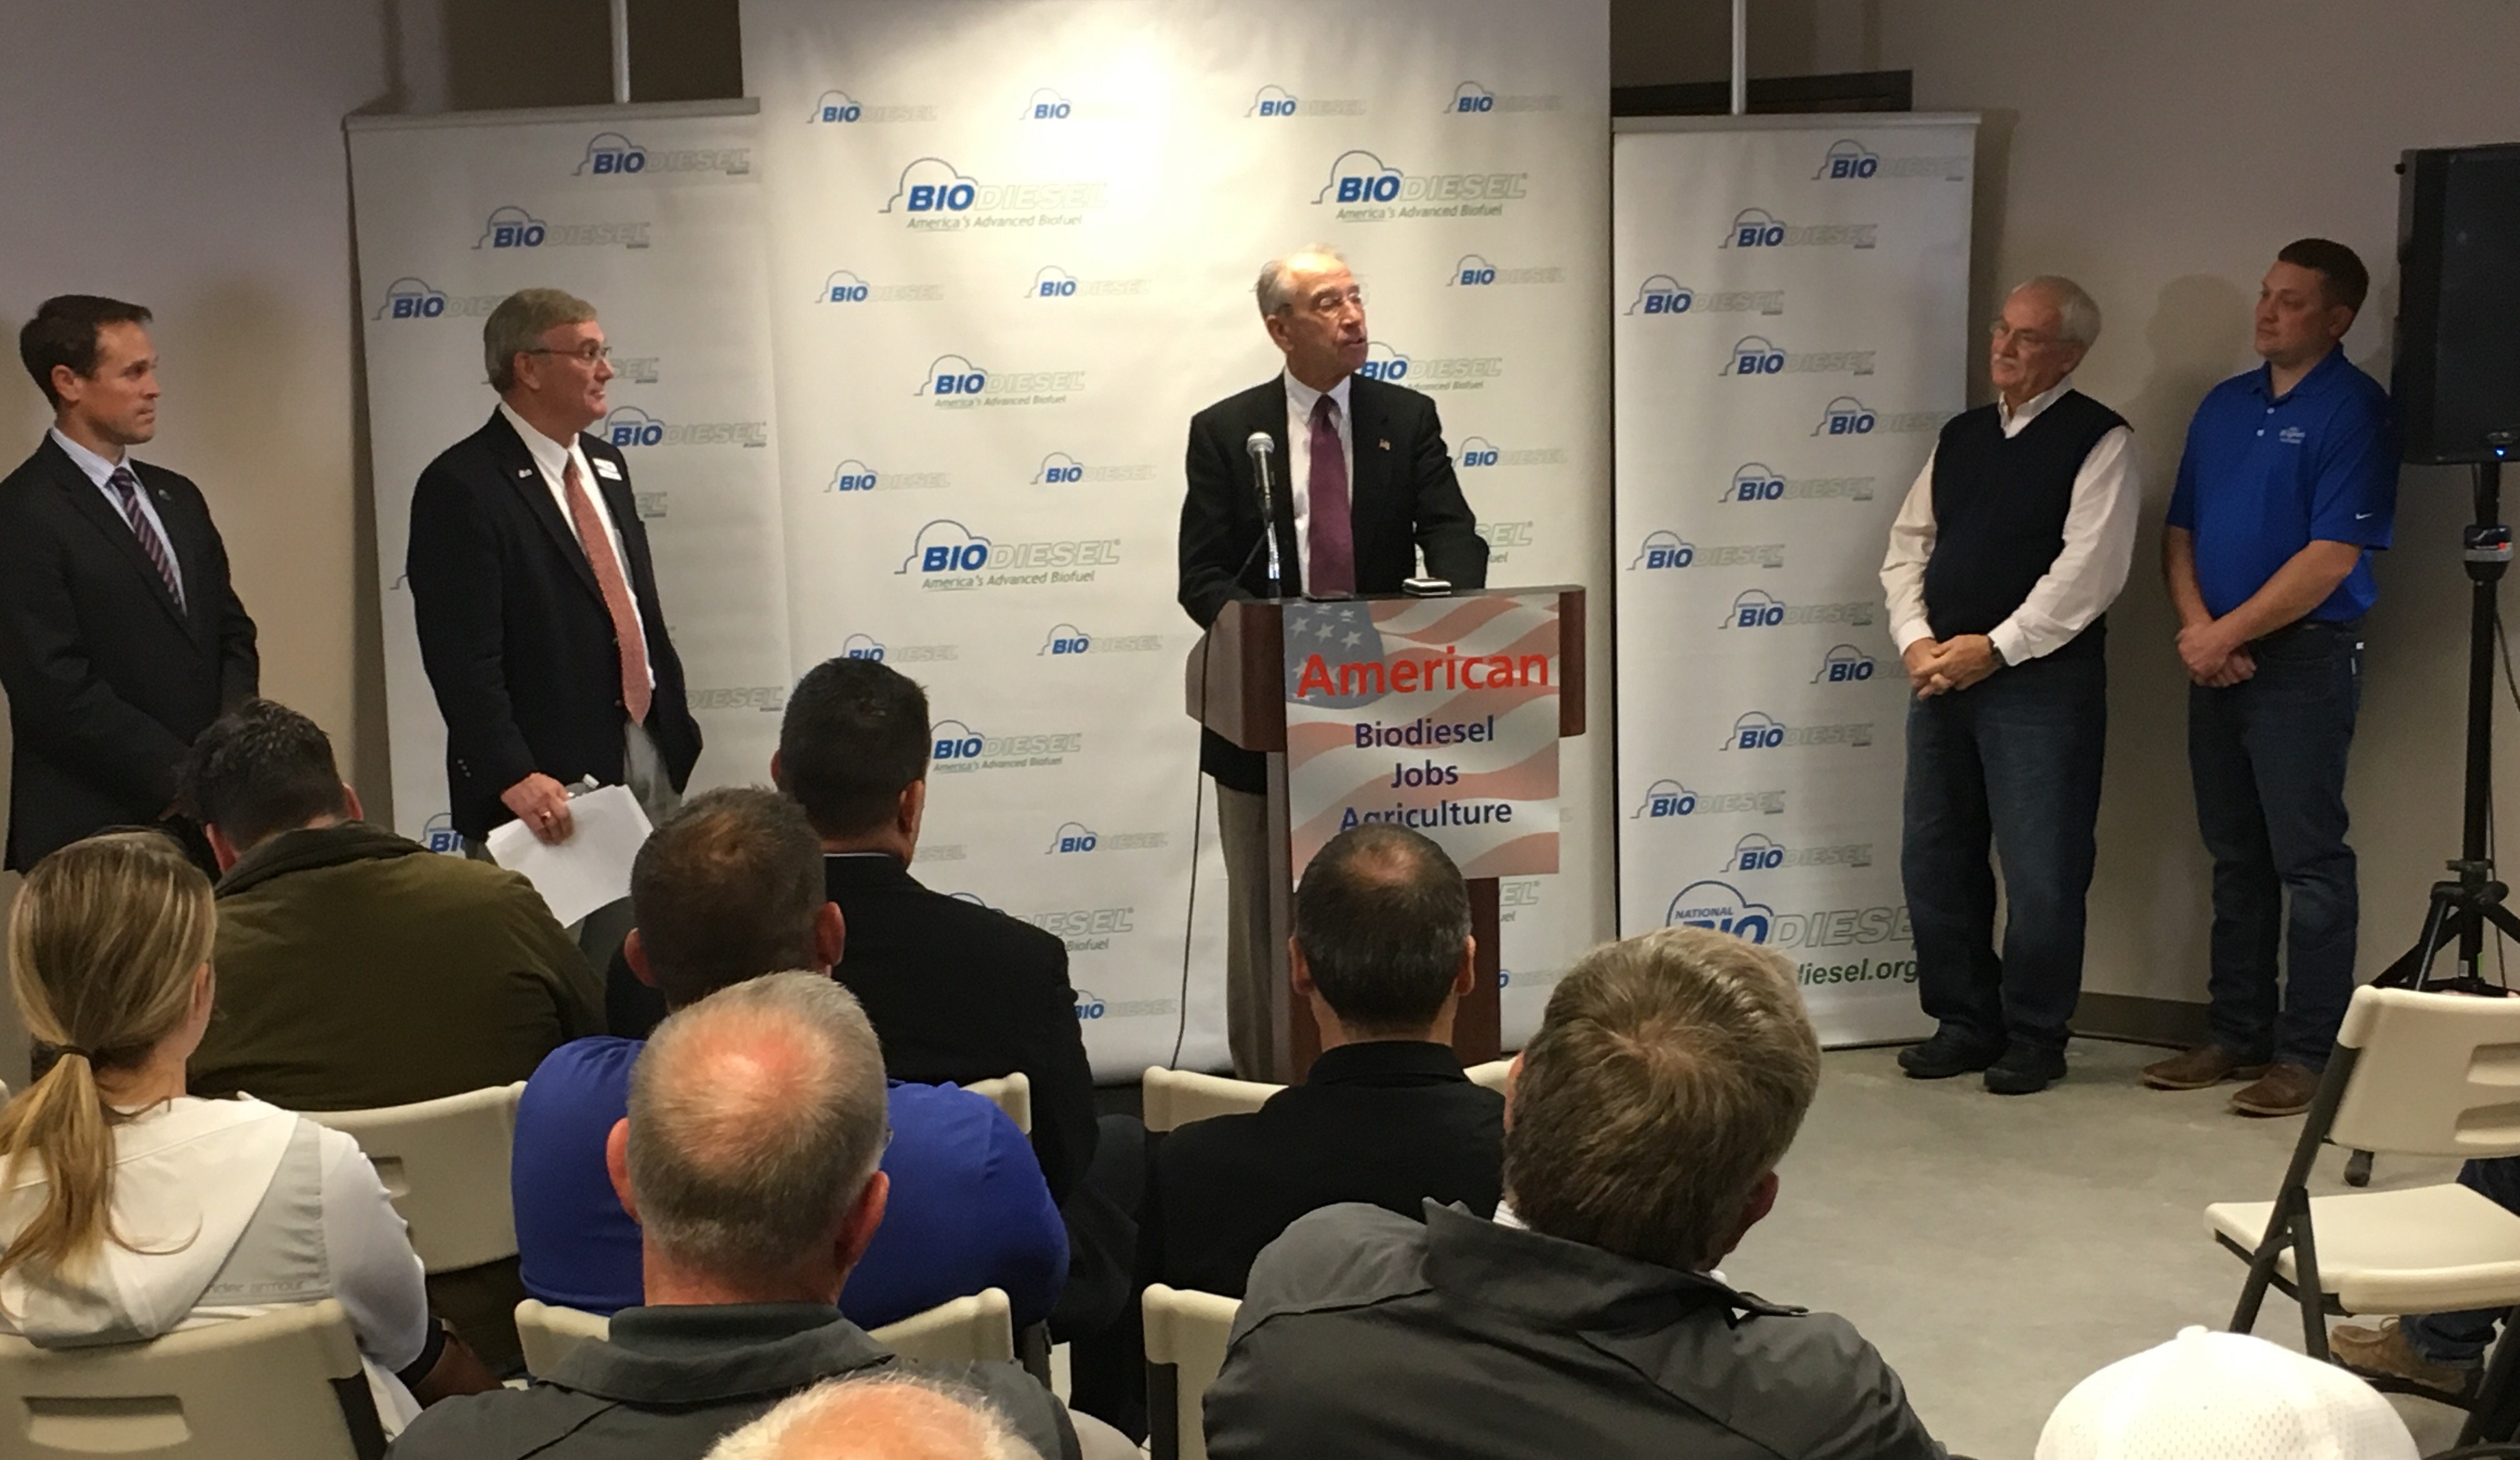 Grassley, Biodiesel Speak Out Against EPA Proposal